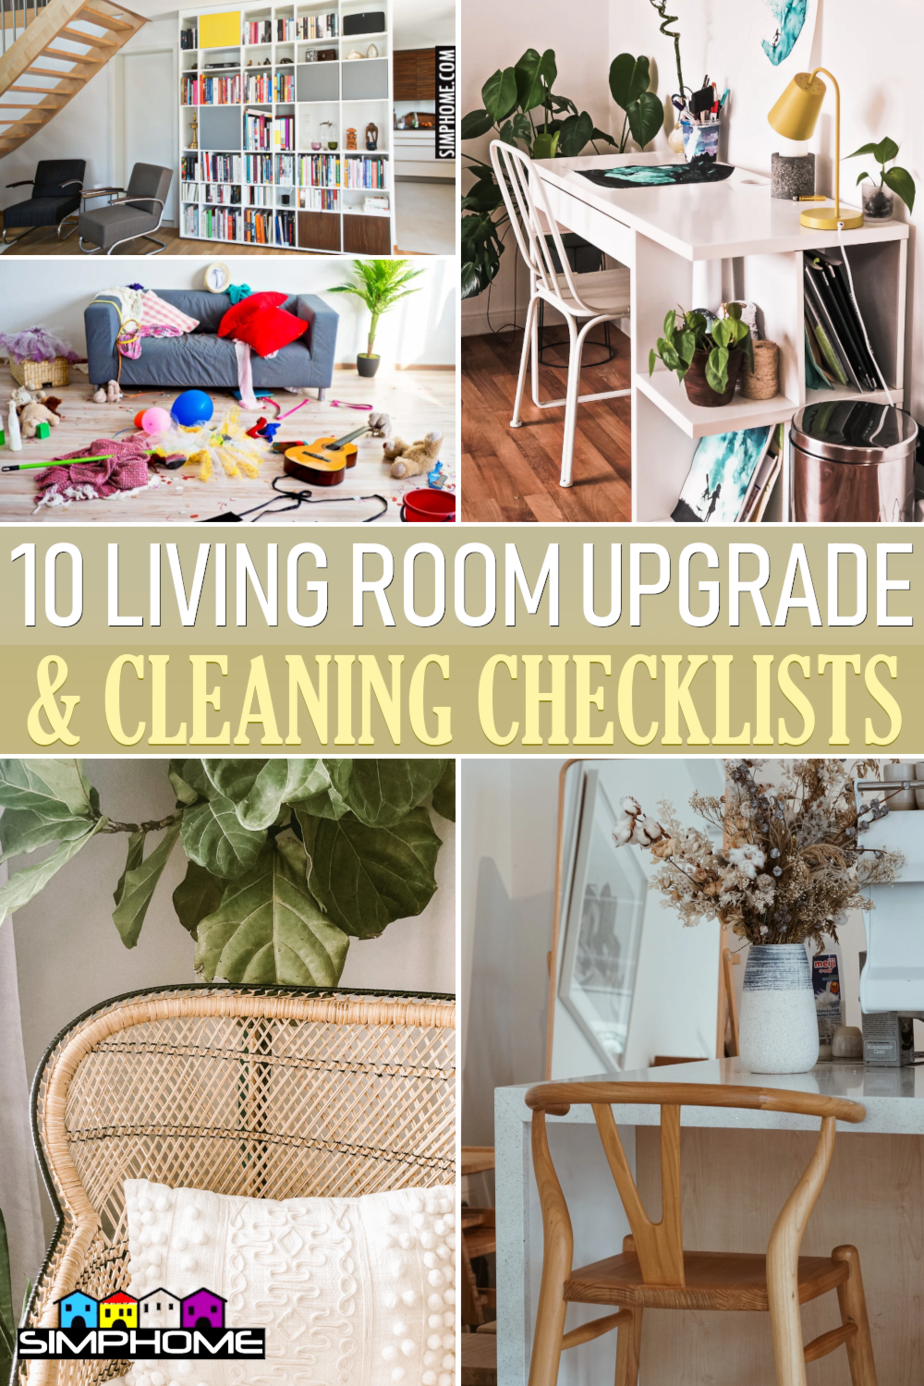 10 Living Room Checklists You Probably Have Missed via SimphomecomFEATURED